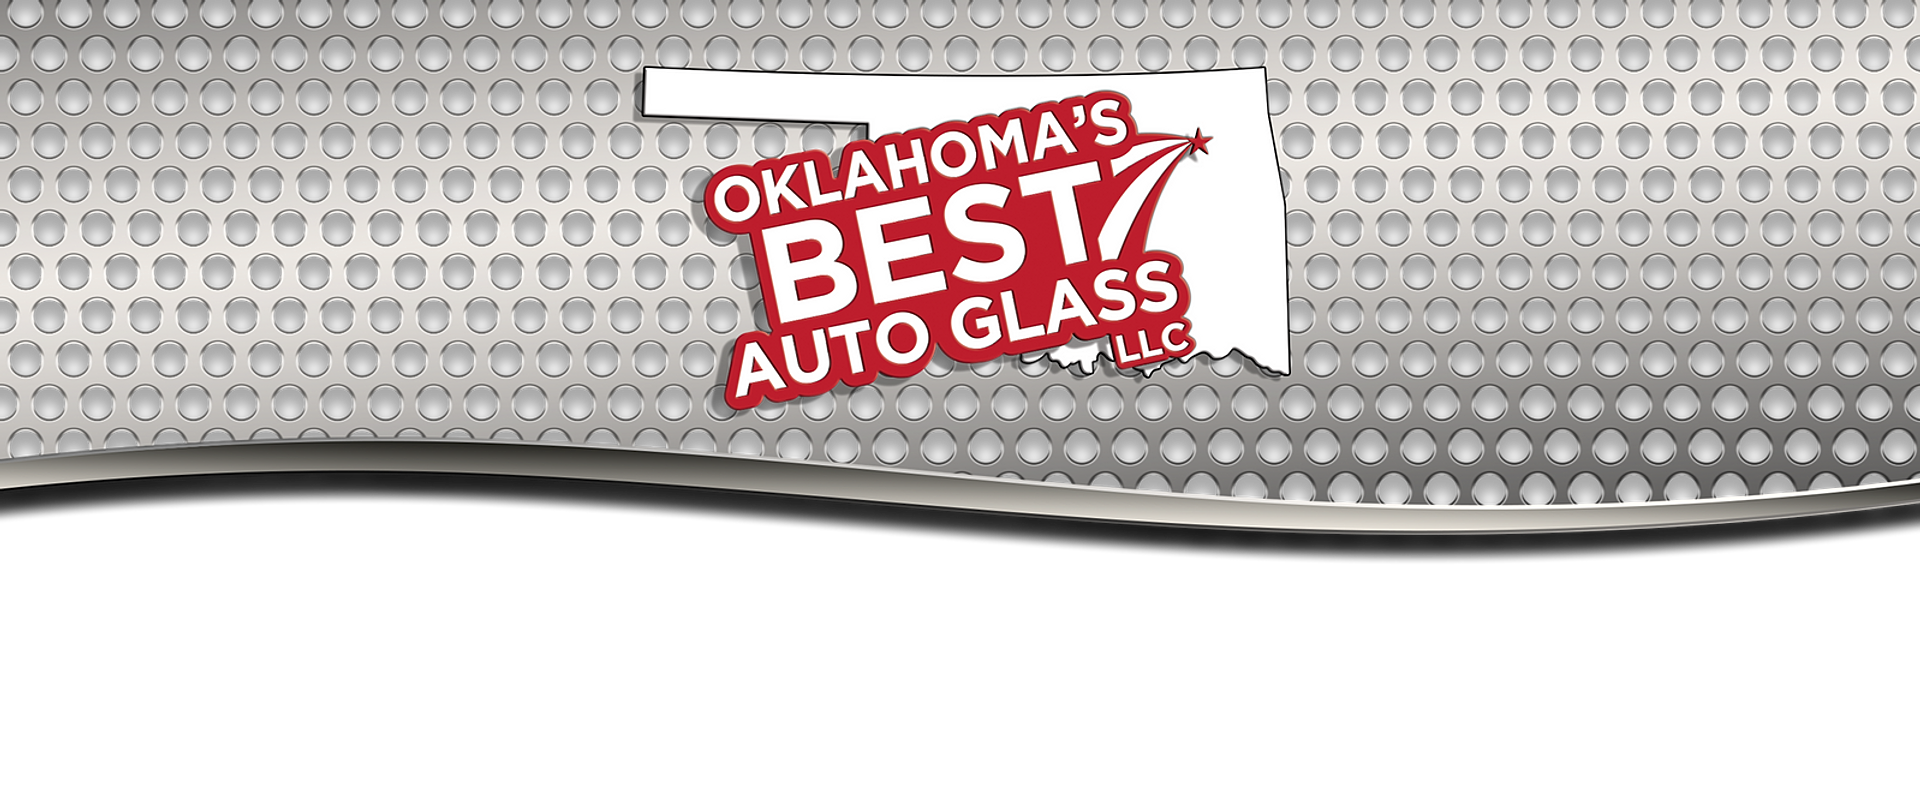 oklahomas best background auto glass replacement tulsa ok